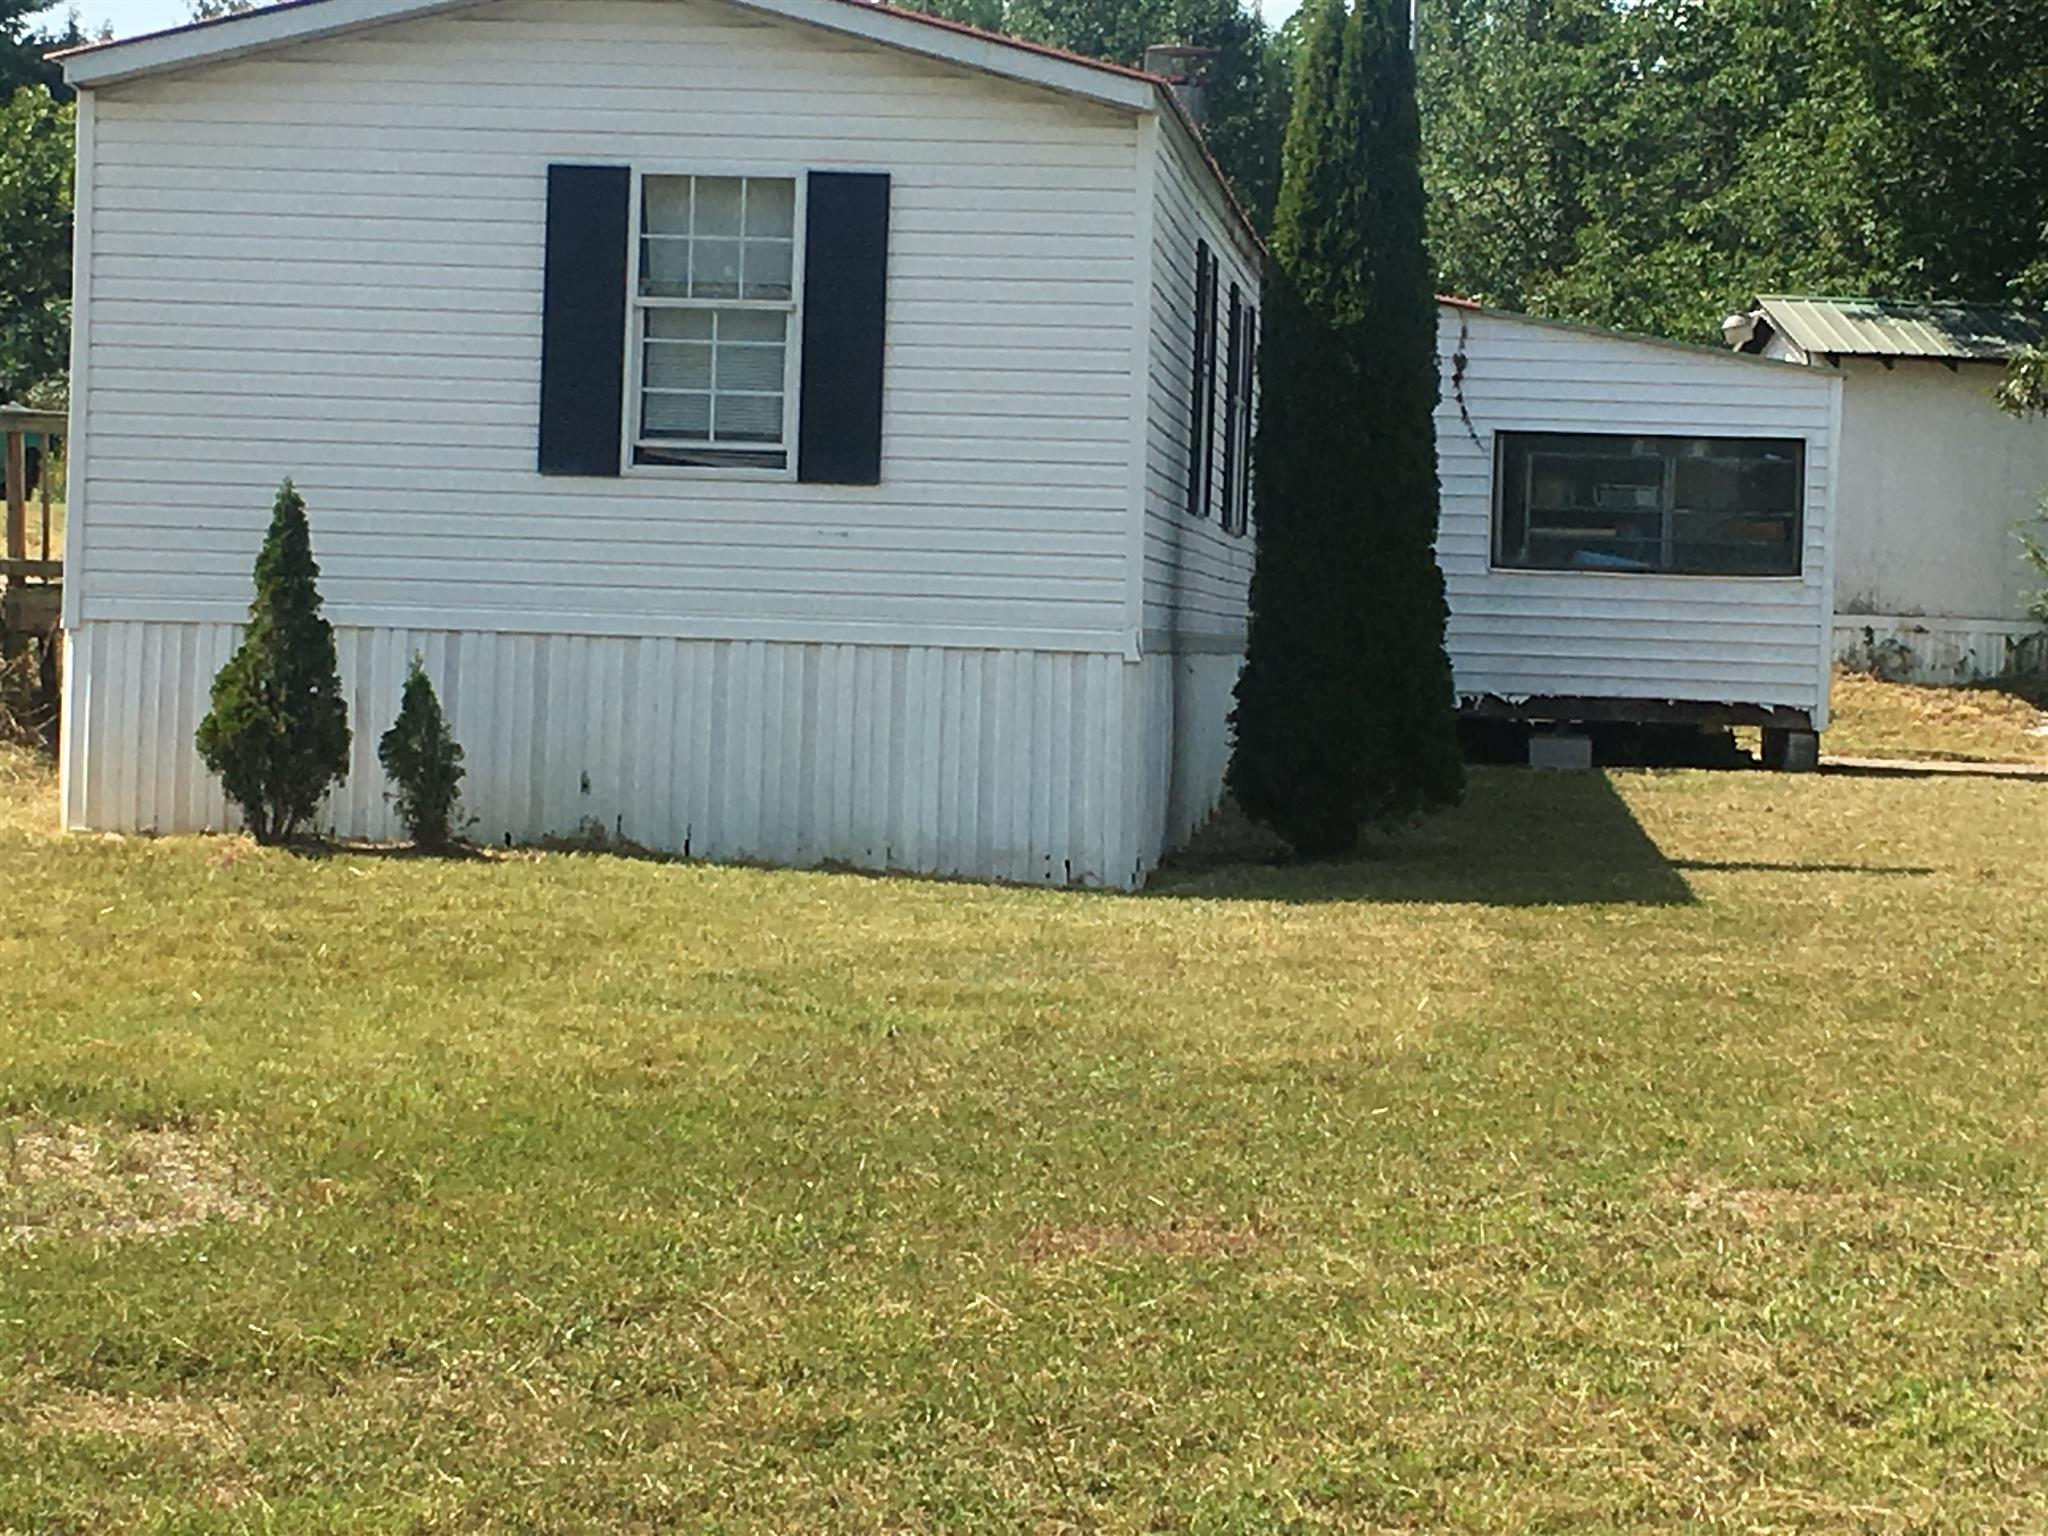 631 Newby Rd, McMinnville, TN 37110 - McMinnville, TN real estate listing